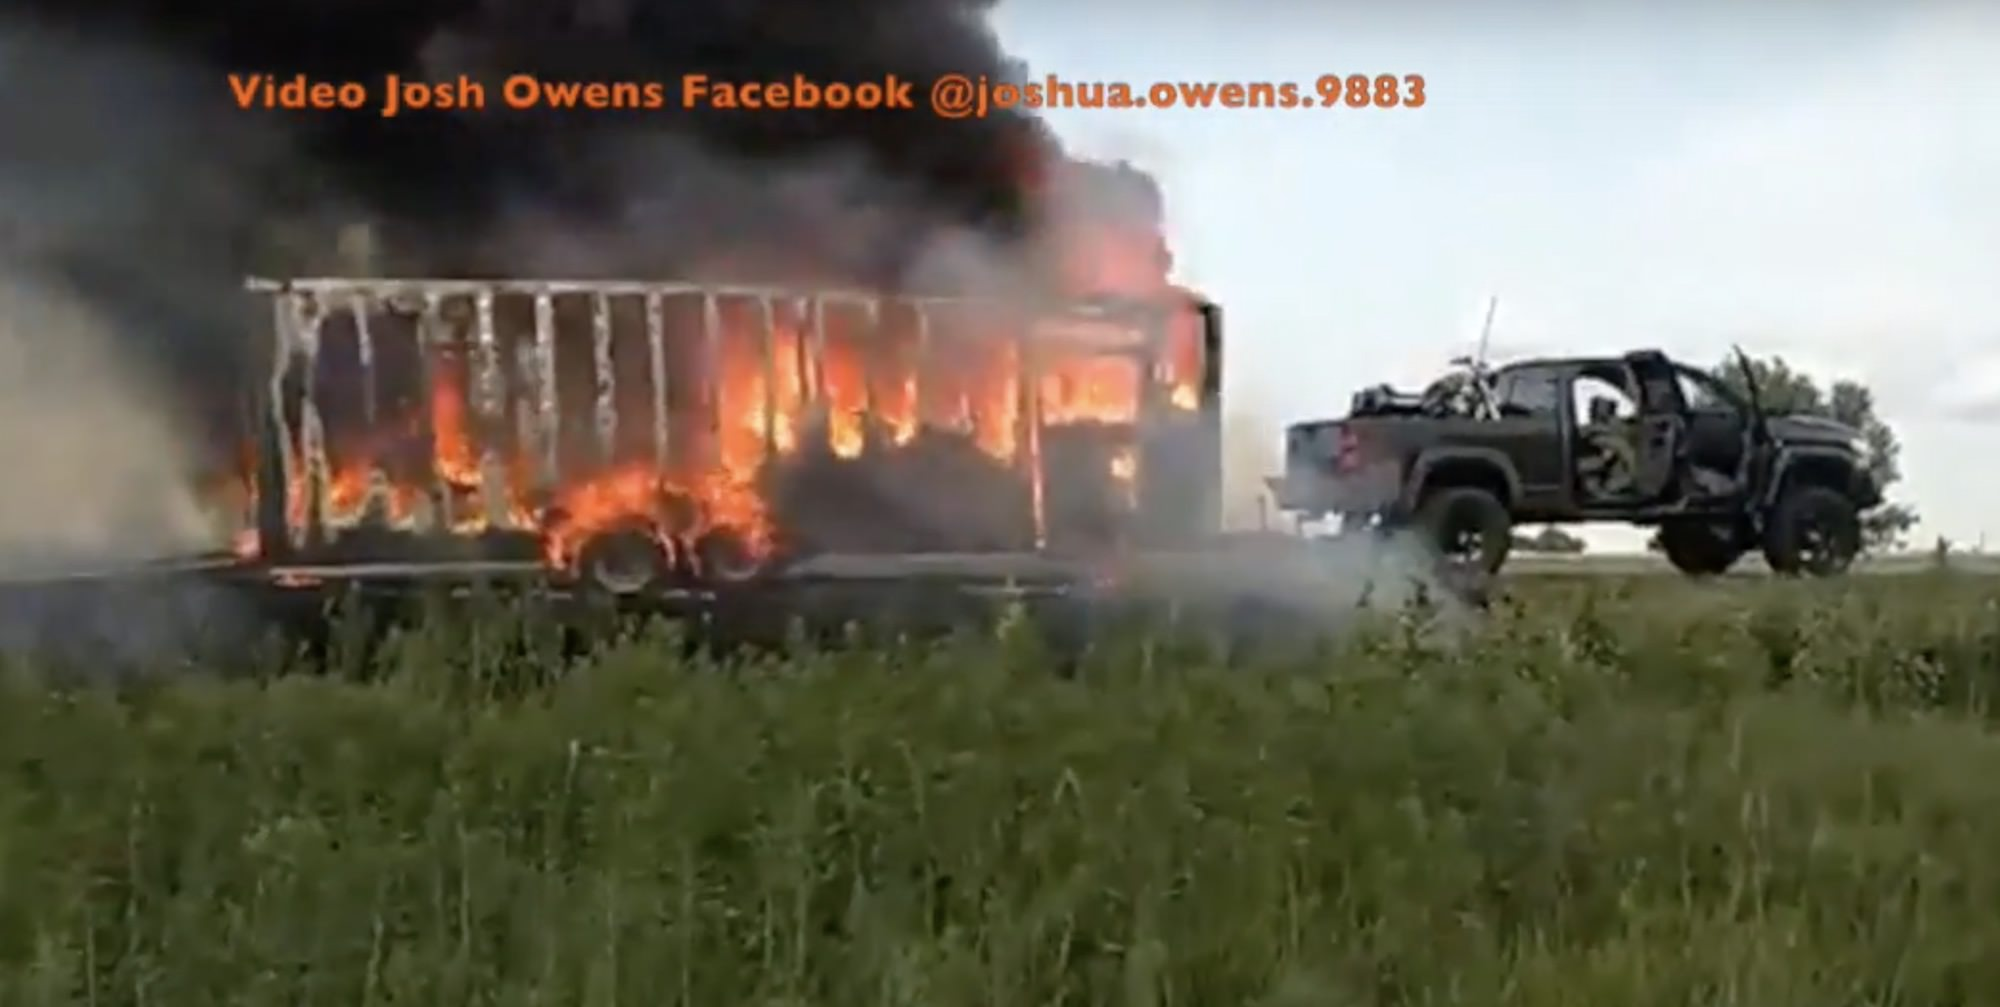 Trailer fire South of Sioux City Iowa was Josh Owens from Discovery Channels Moonshiners